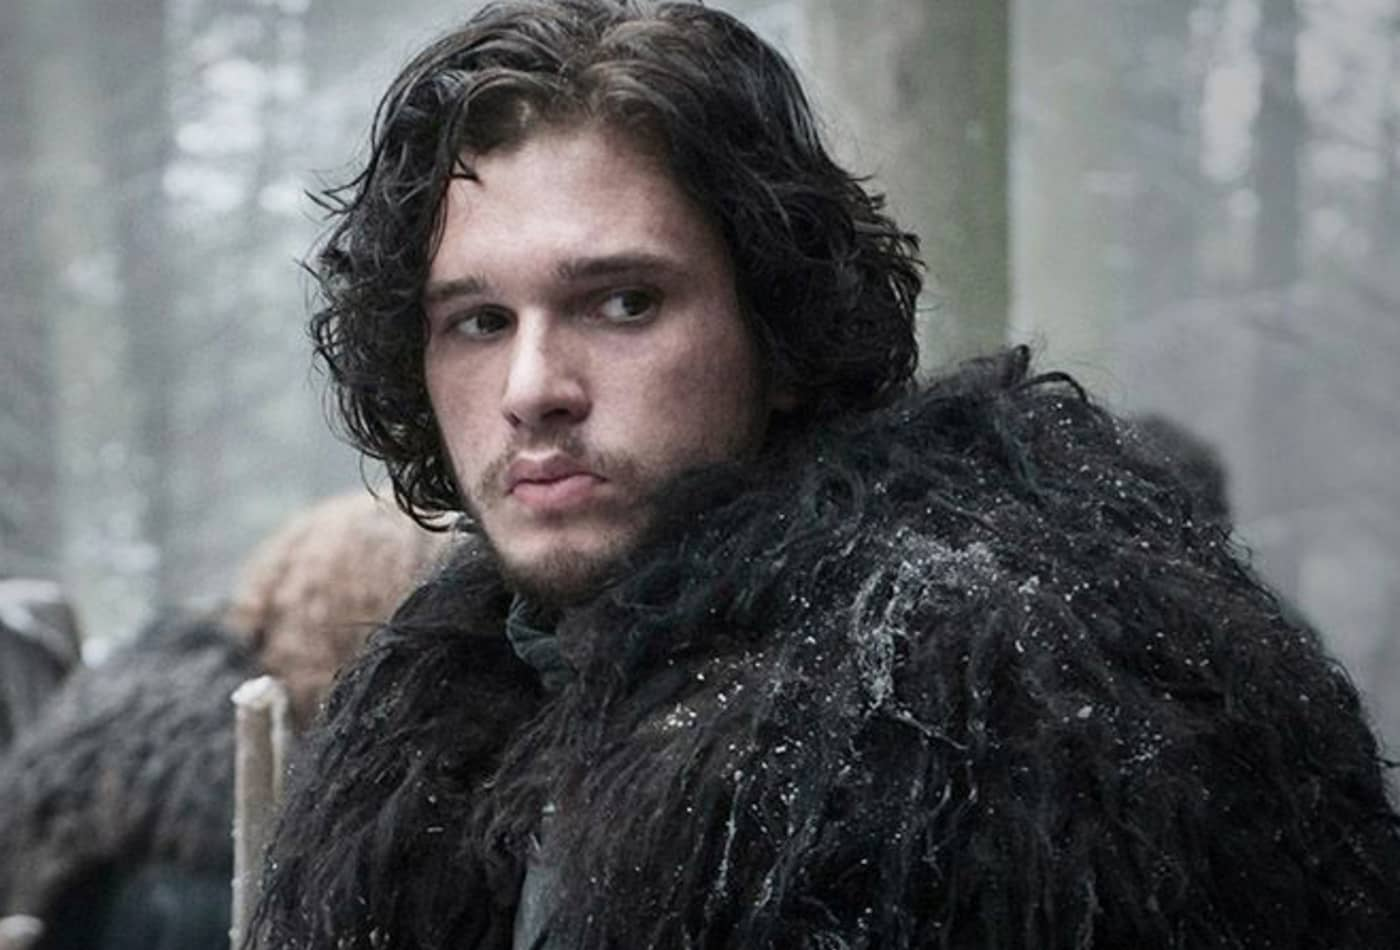 Jon Snow's Game of Thrones cloak is made from IKEA rugs